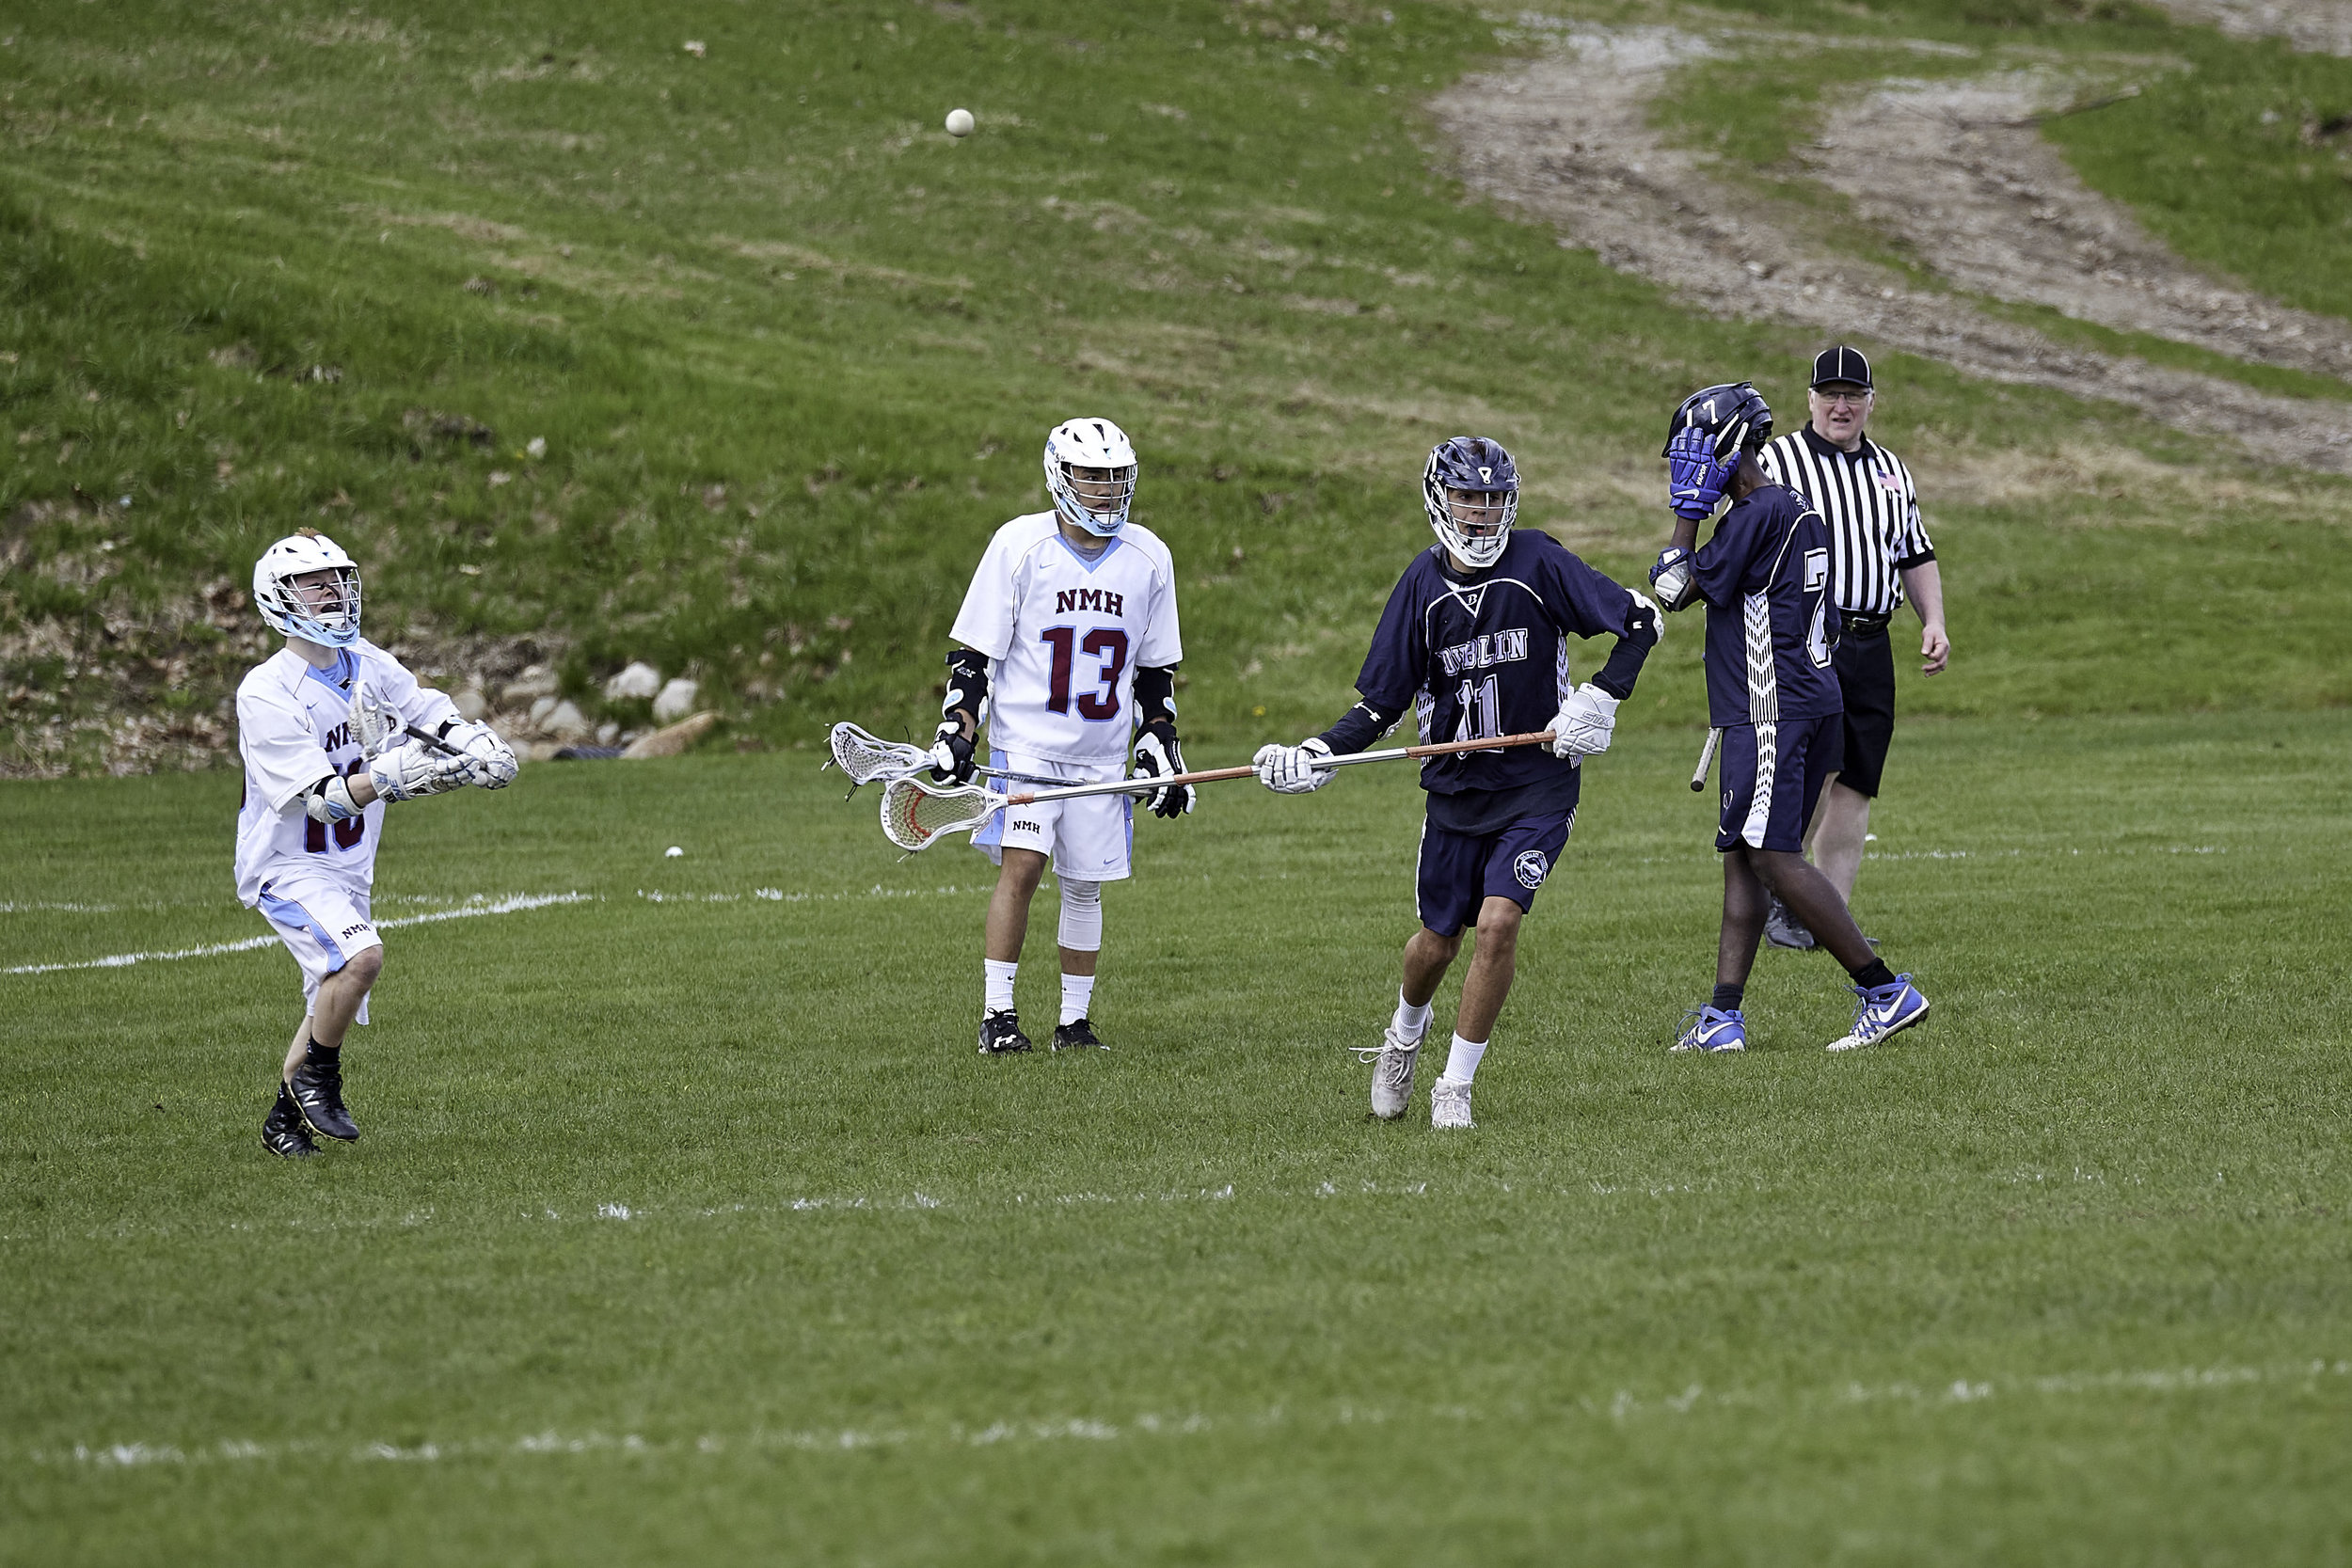 Boys Lax vs Northfield Mount Hermon JV - May 15 2019 - 0054.jpg